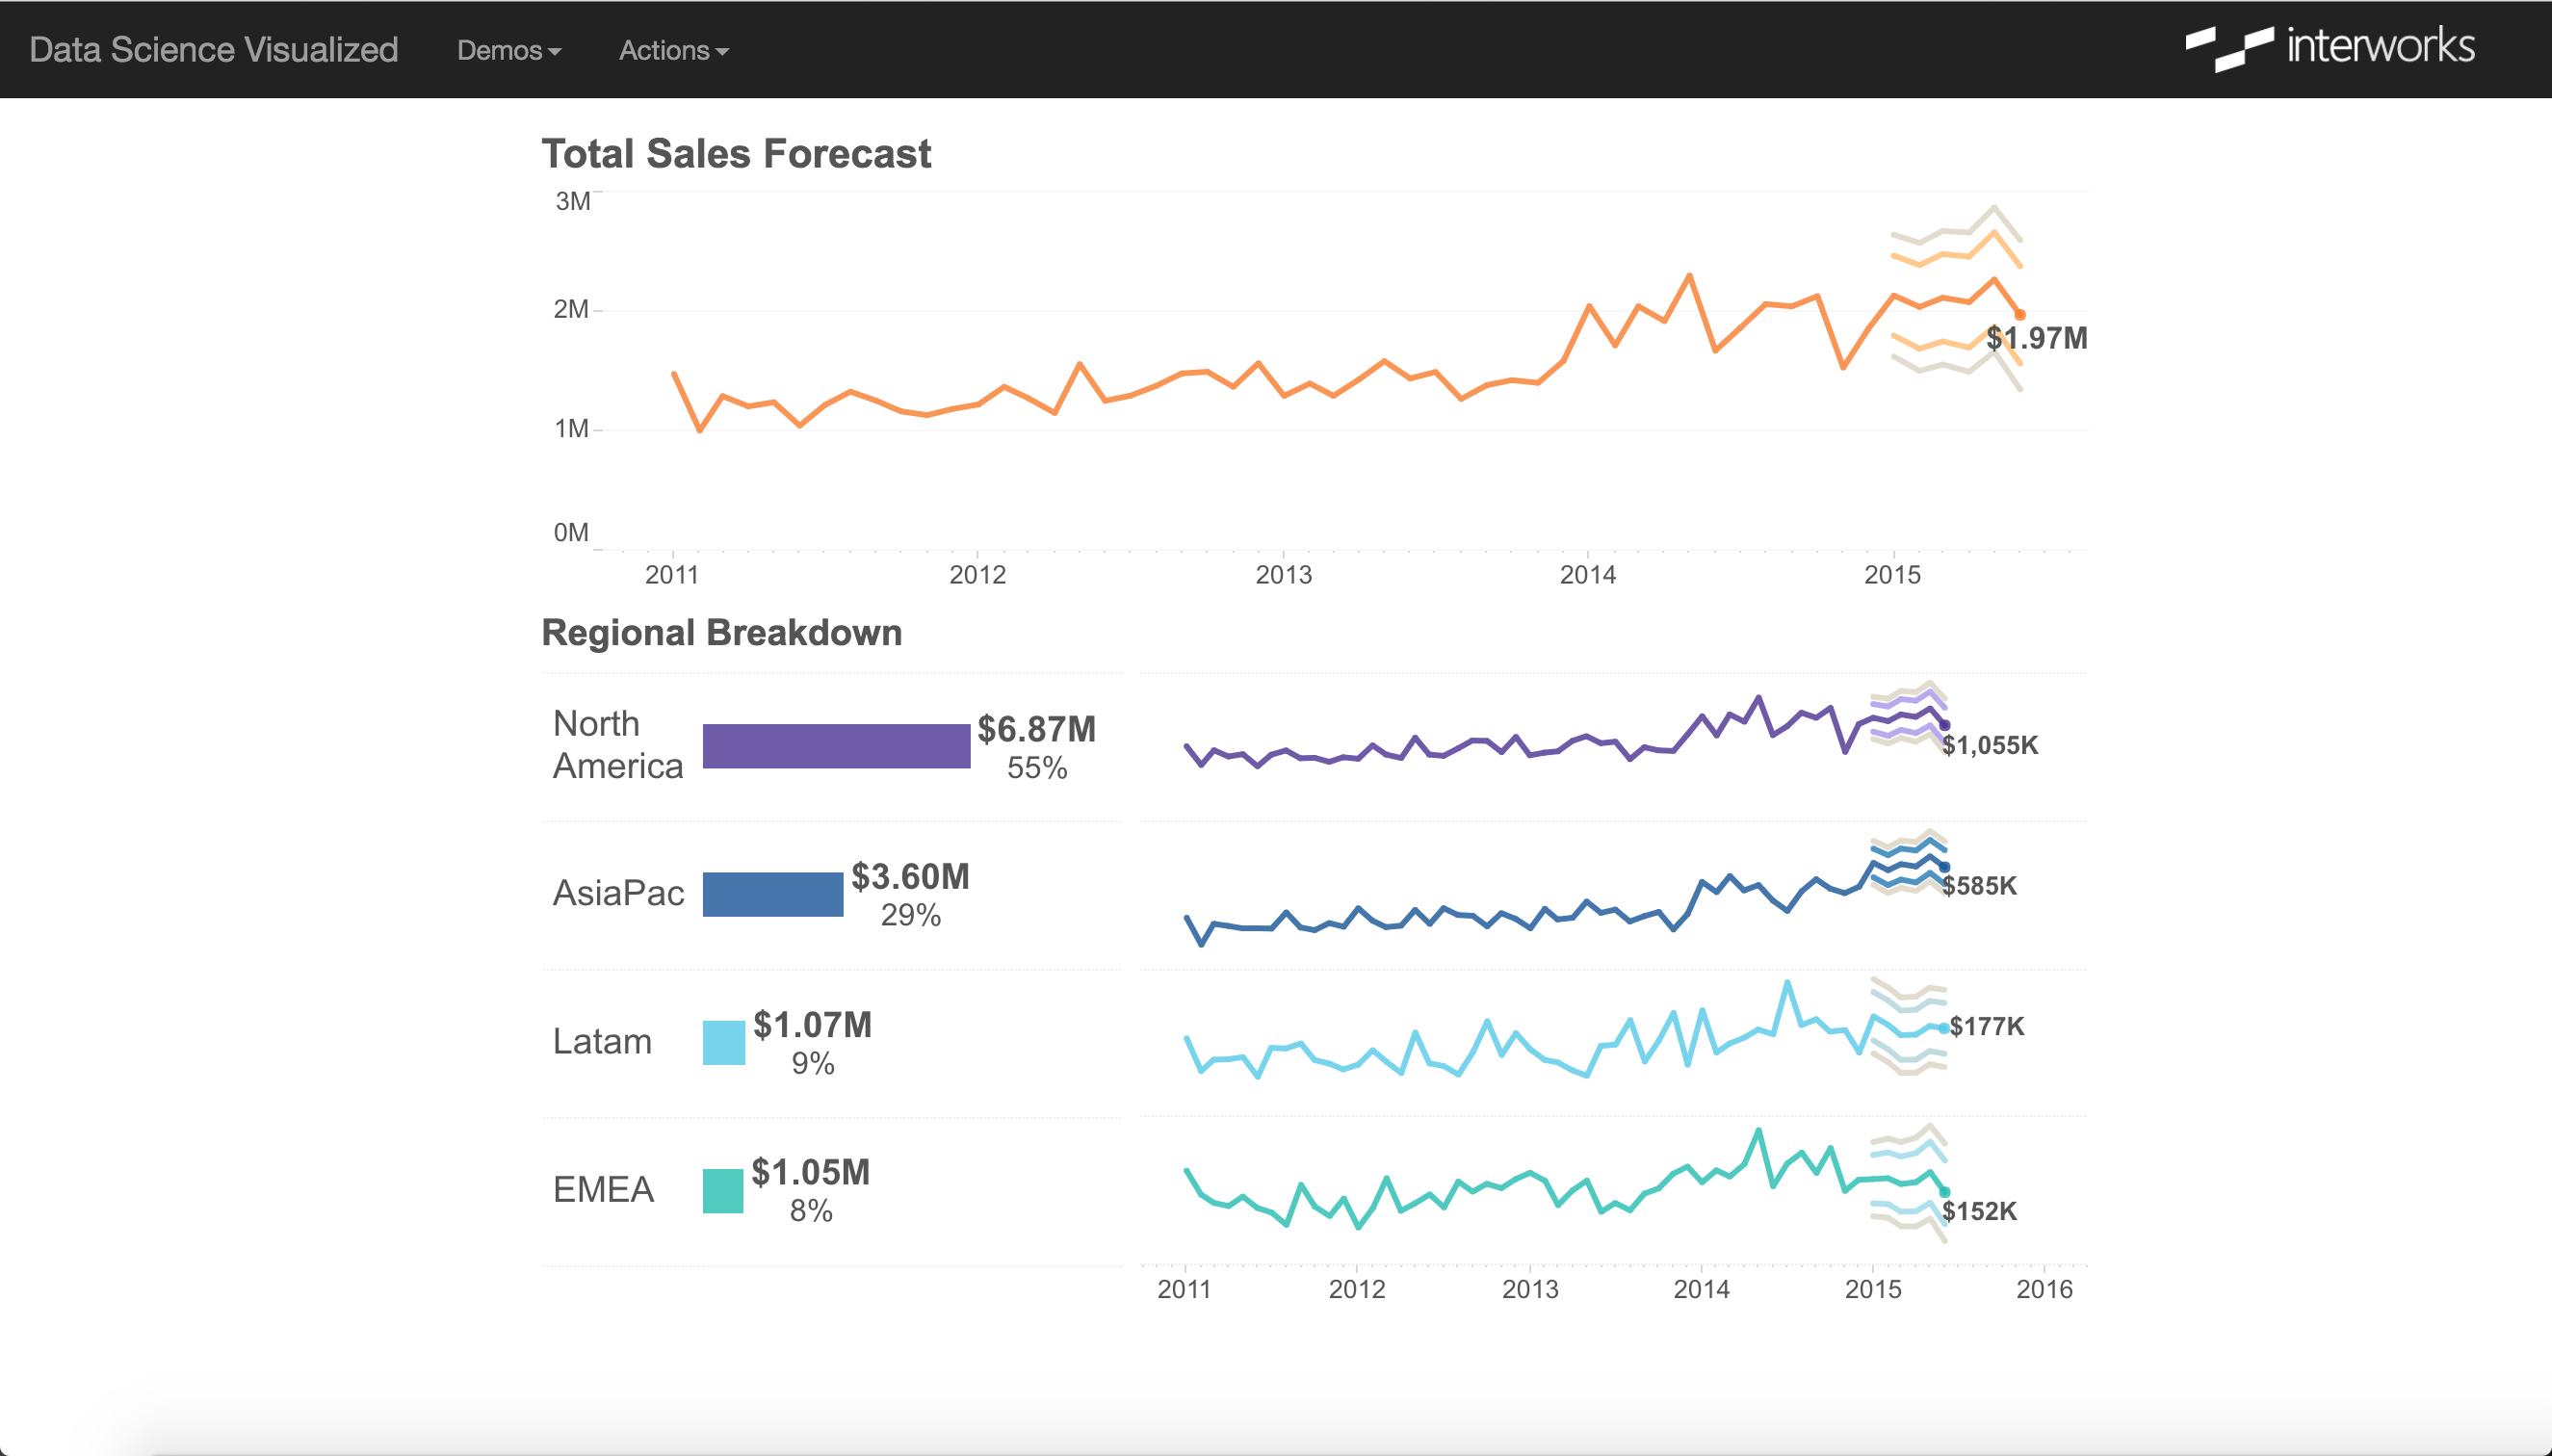 Data Science Visualized: Sales Forecast